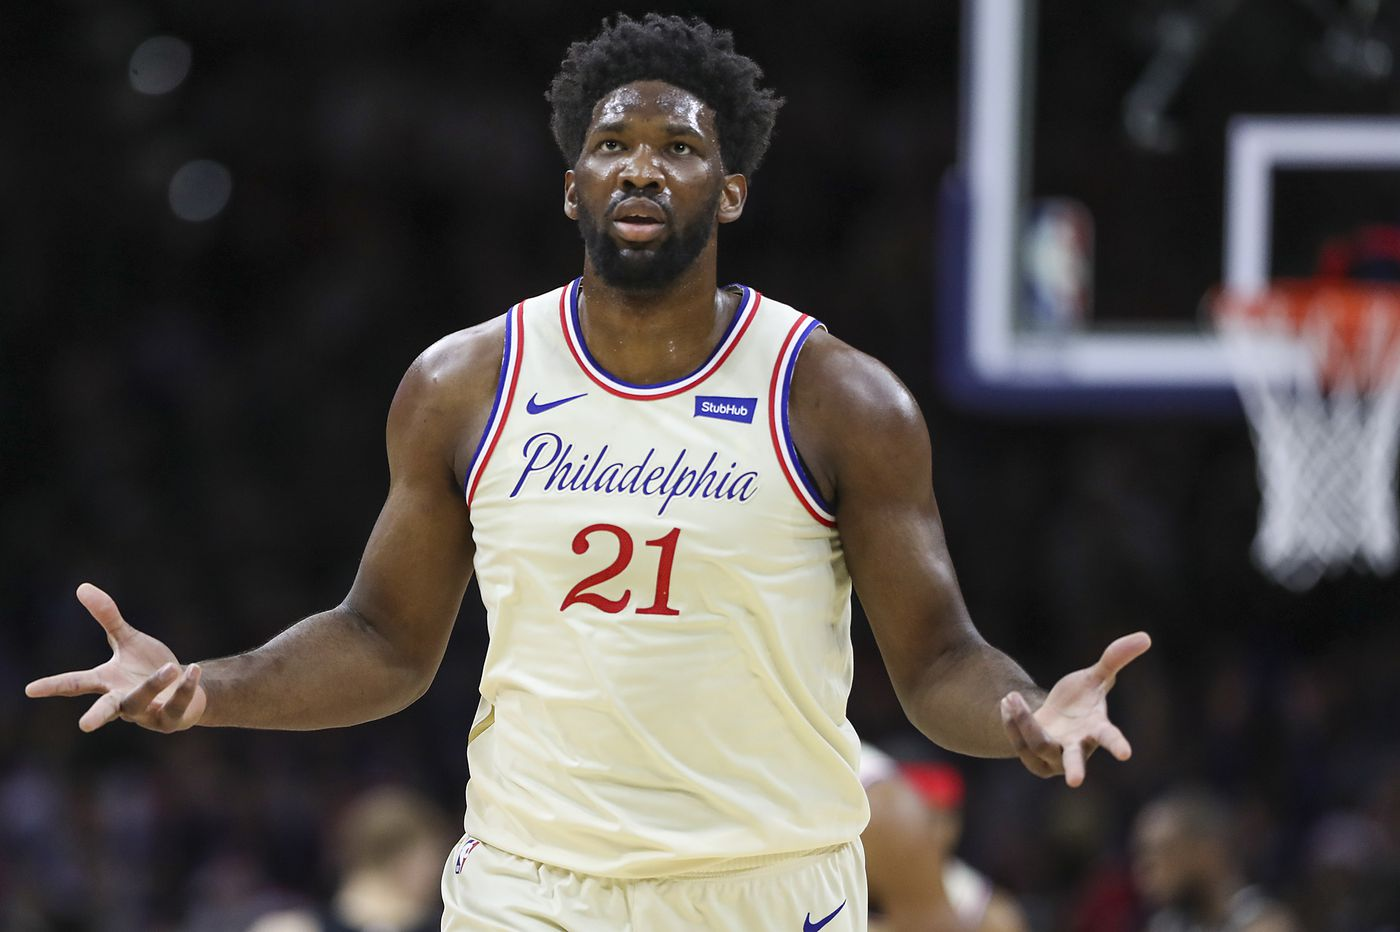 Christmas show: Joel Embiid, Sixers dominate Milwaukee Bucks, 121-109